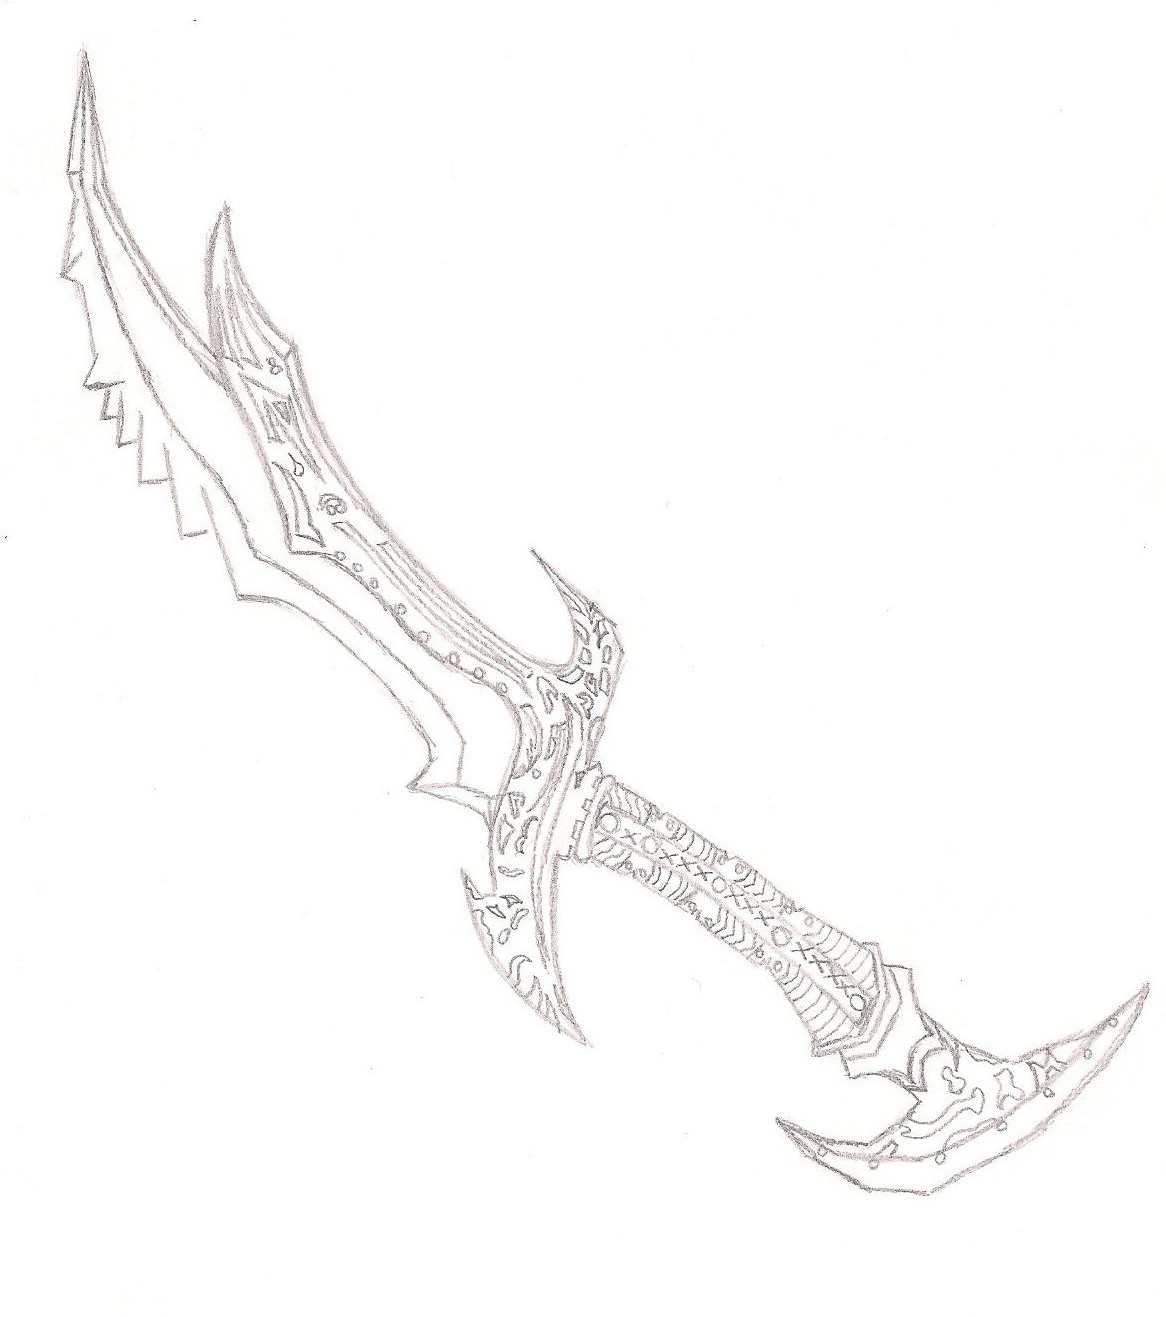 Sword Drawing Step By At Free For Personal Origami An Style 1166x1317 Daedric Skyrim Failedxexperimentx13